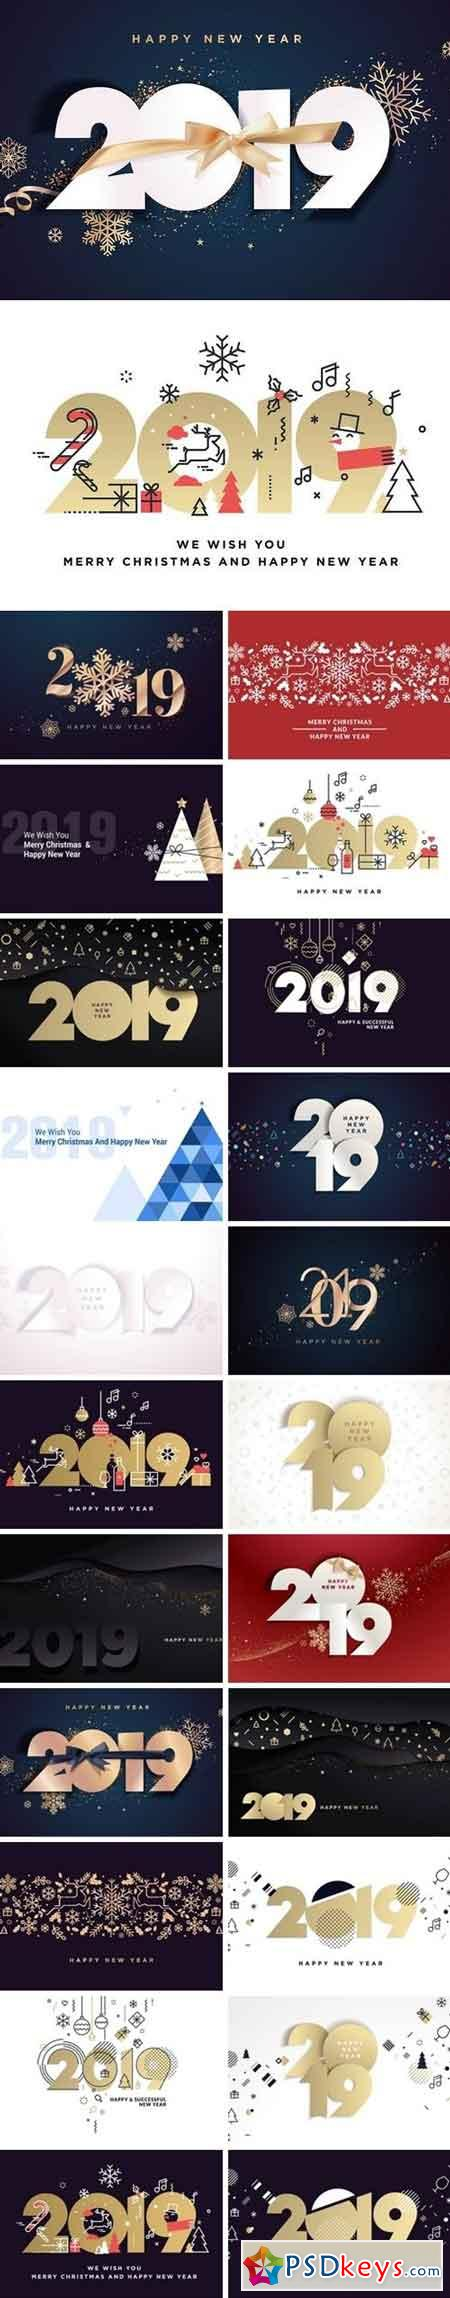 Happy New Year 2019 Vector Card Bundle 2